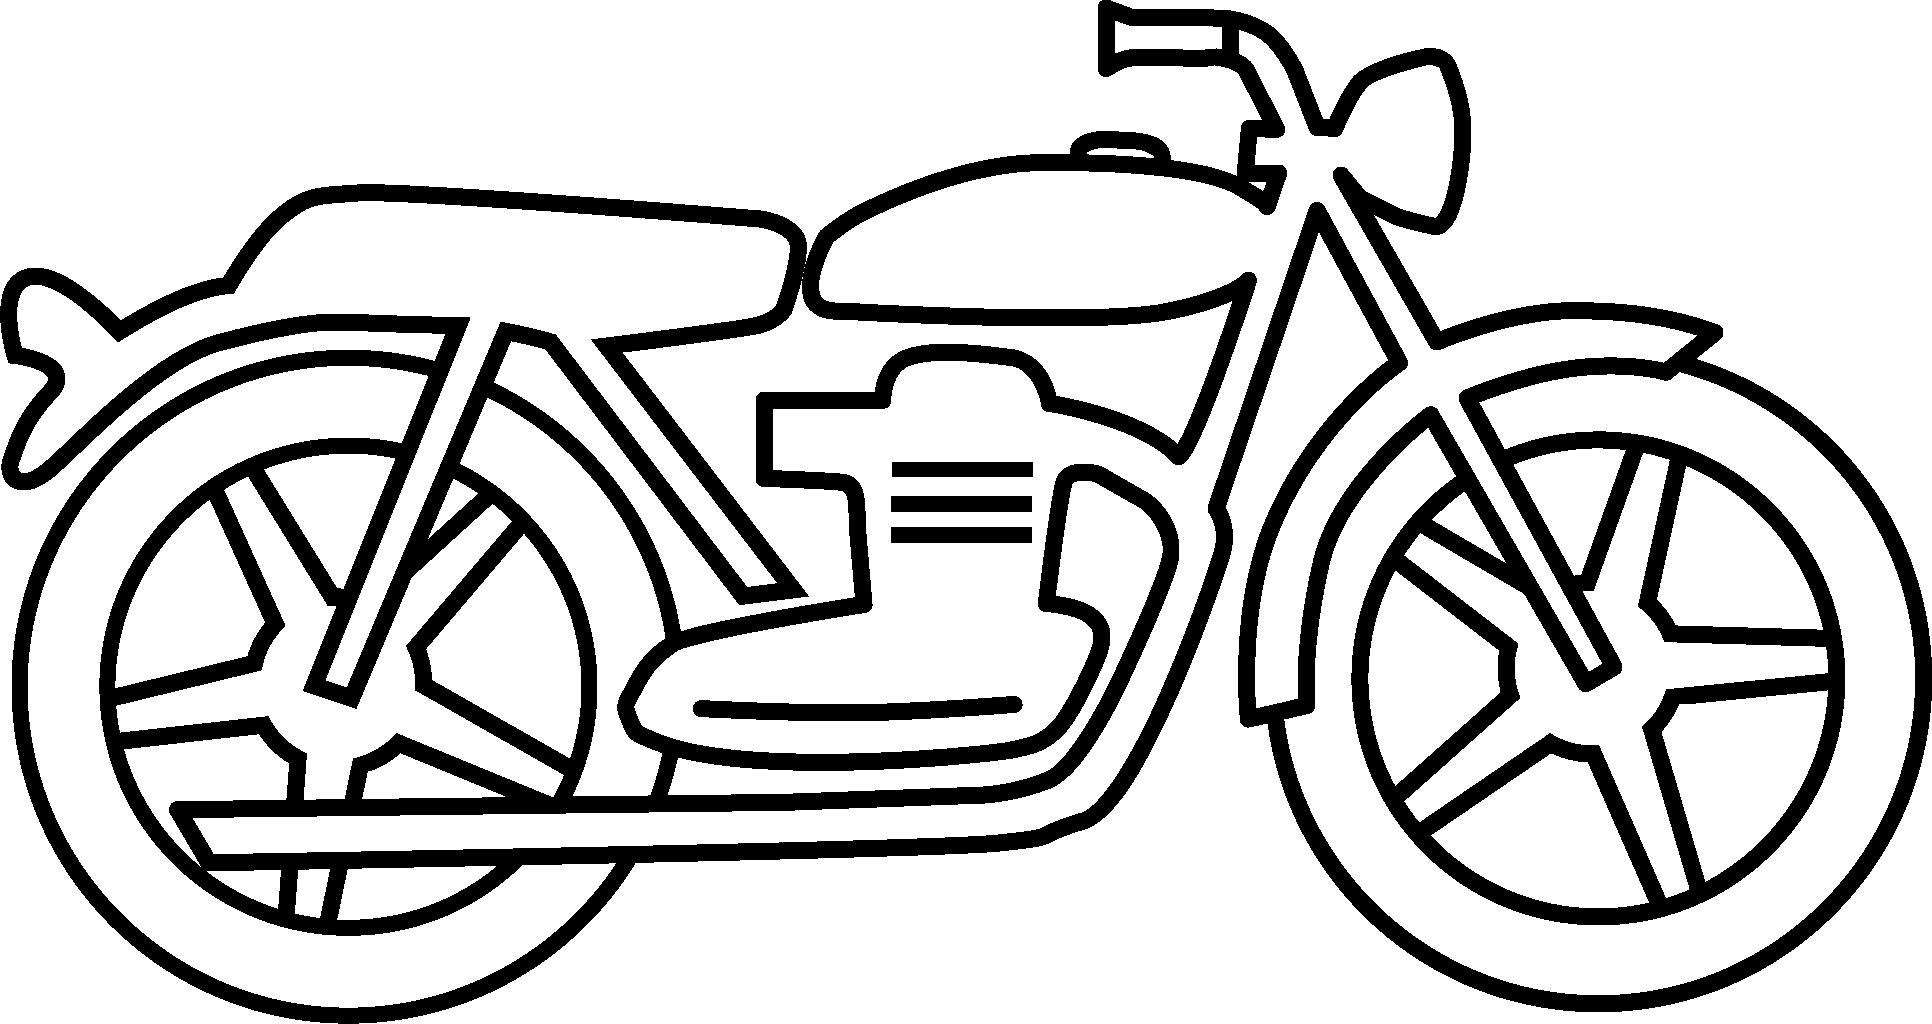 Free Motorcycle Cliparts Black, Download Free Clip Art, Free.